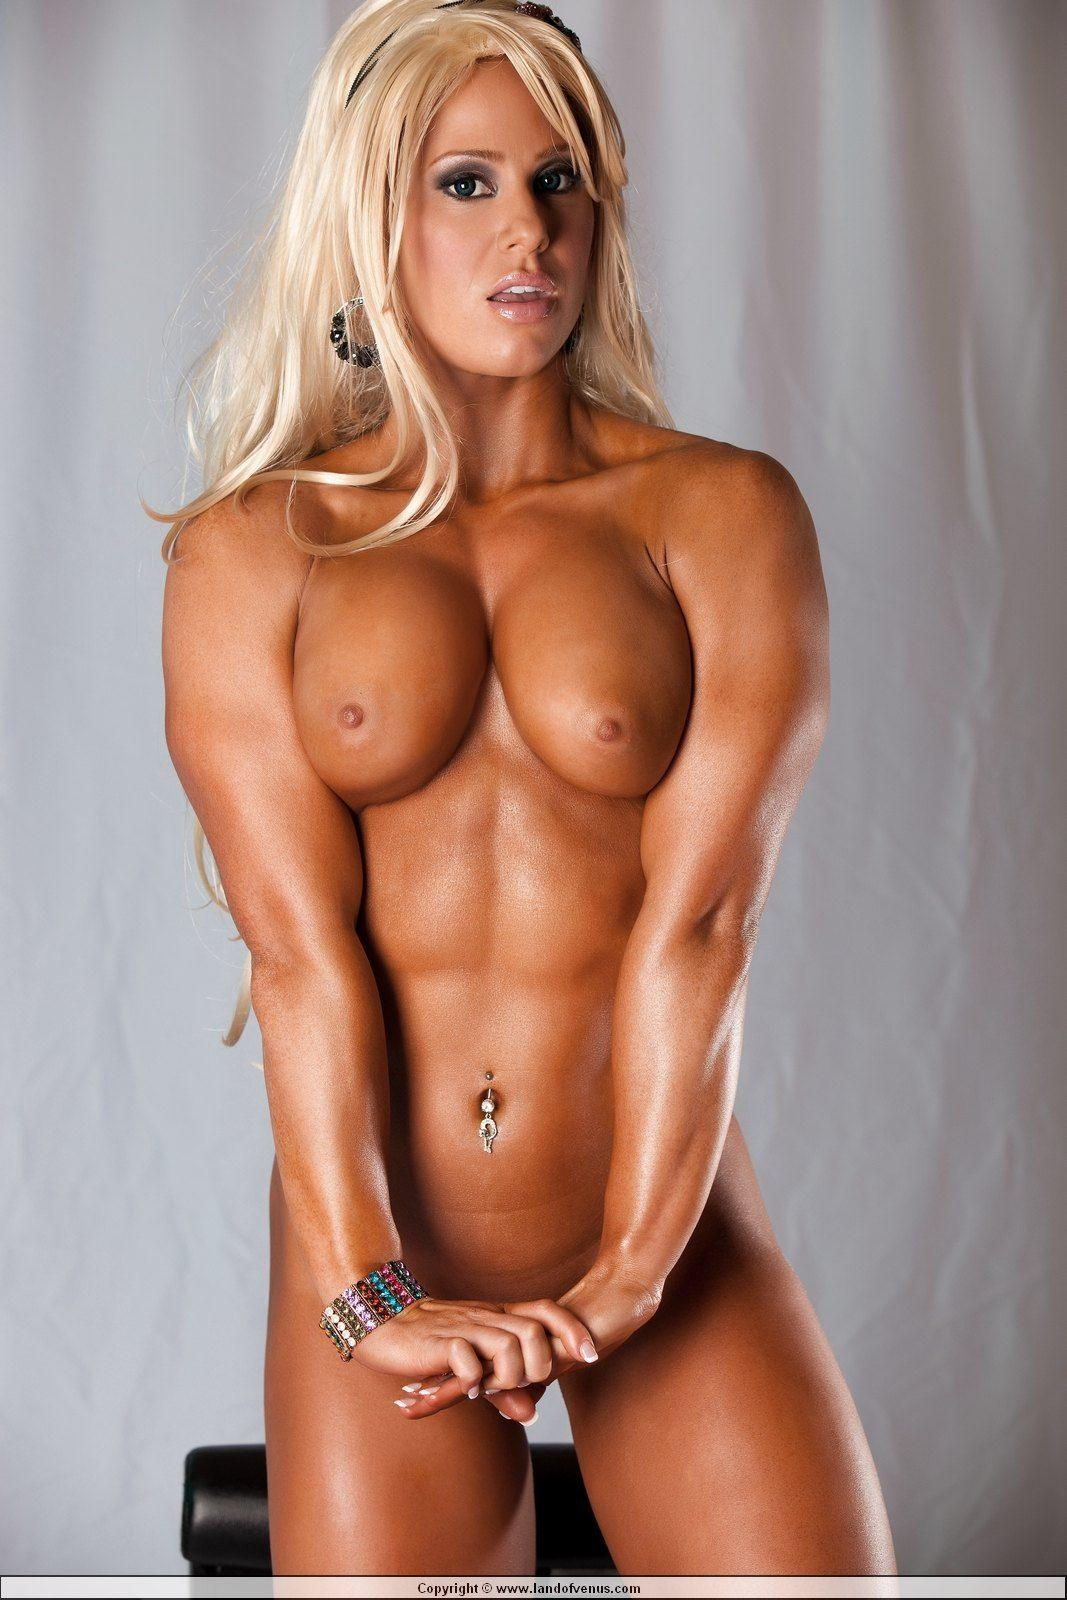 The P. reccomend Nude muscle women galleries